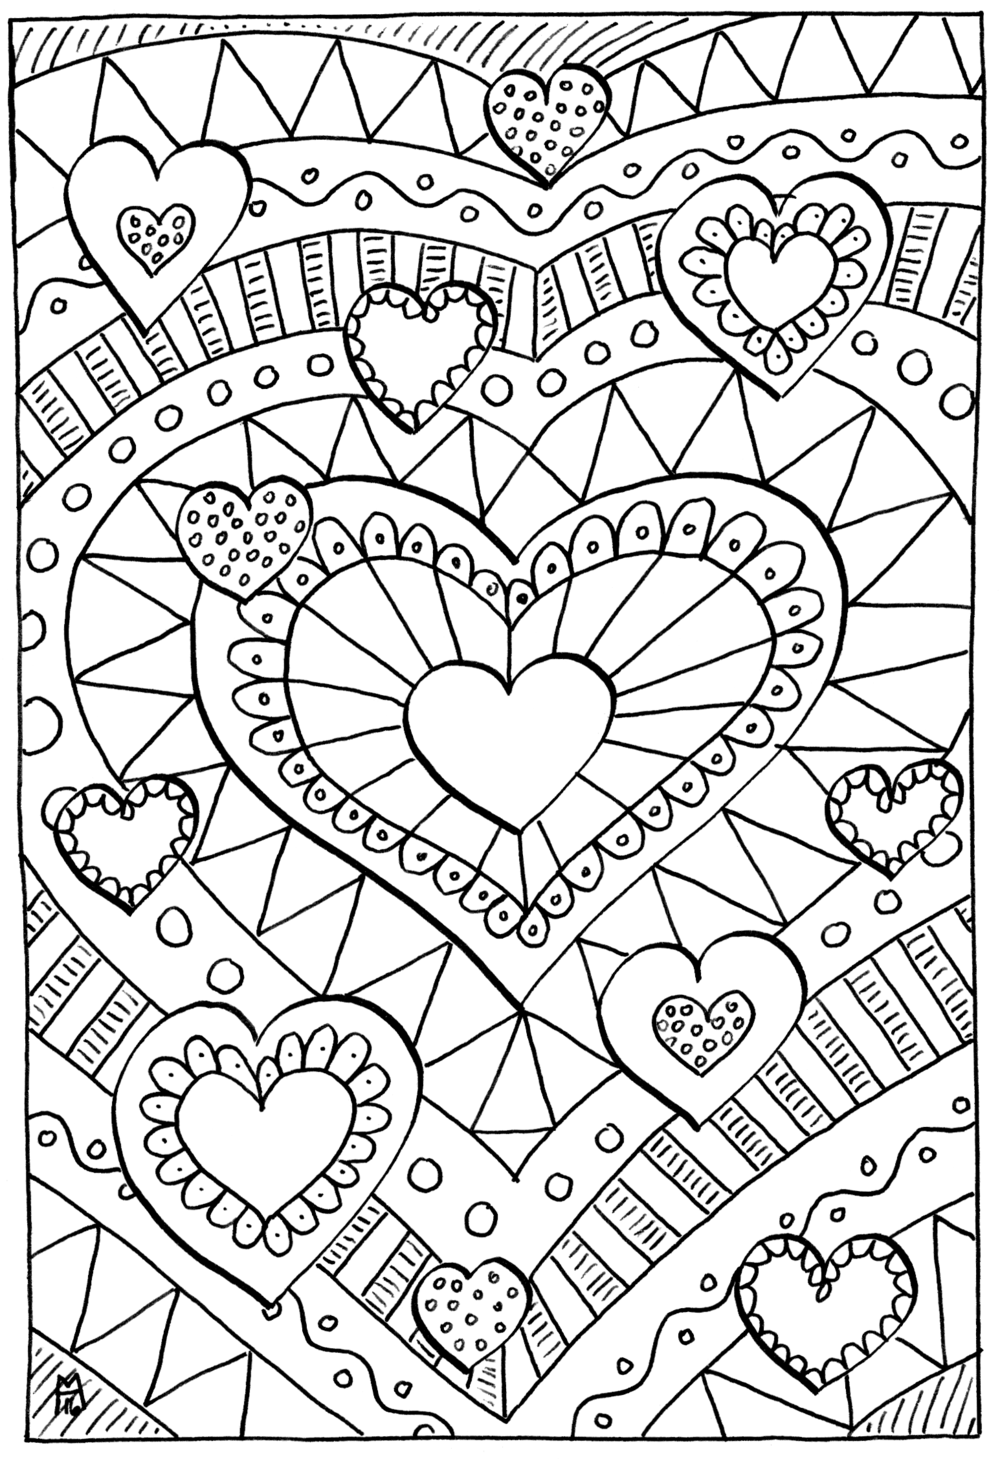 arts coloring pages - photo#21